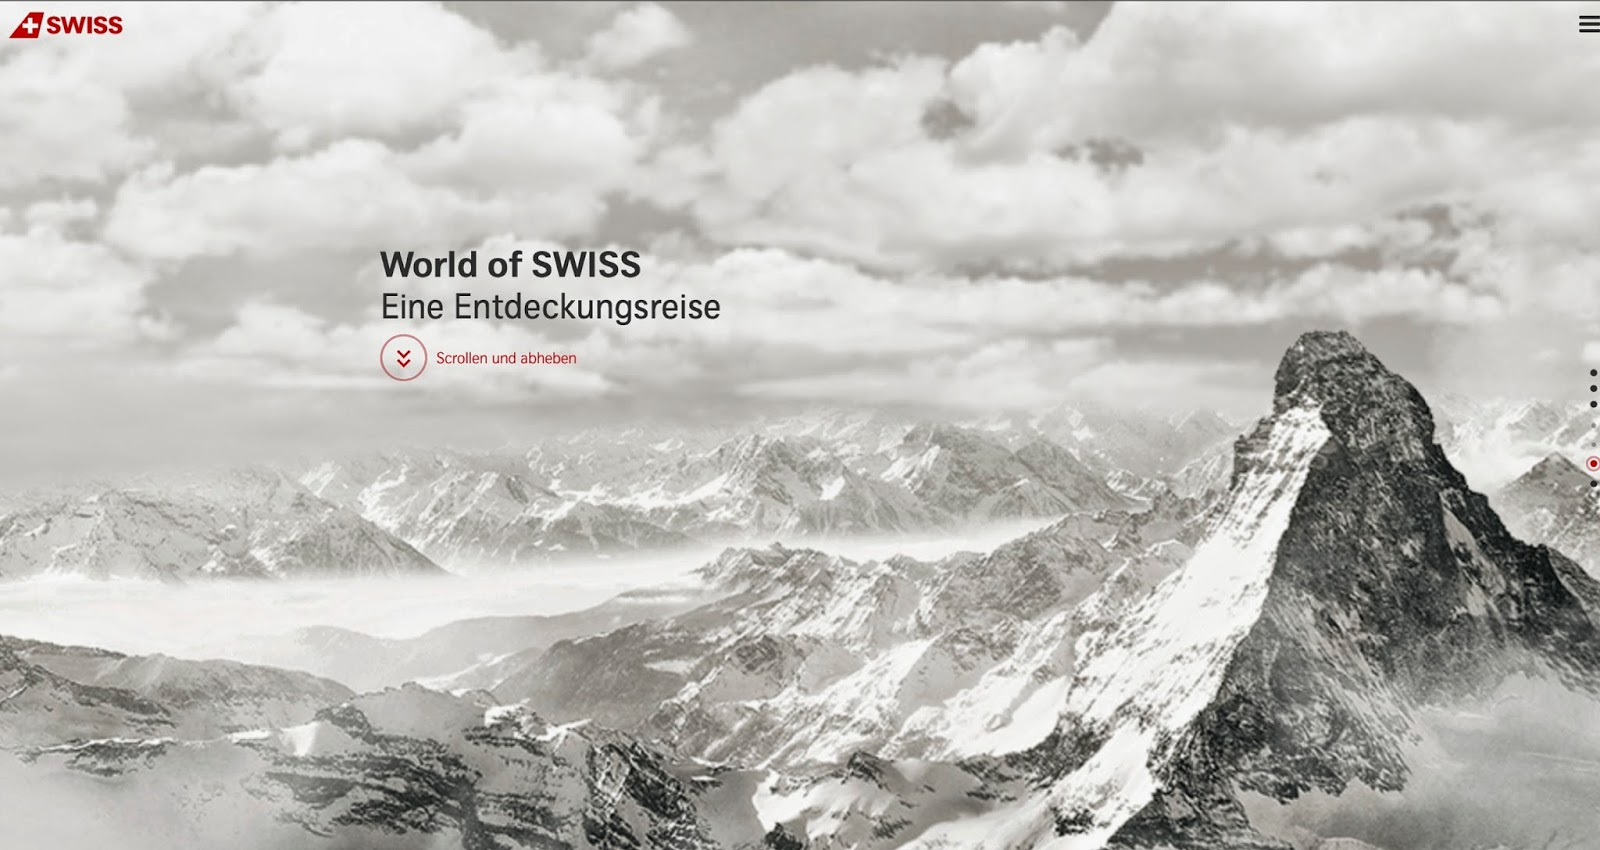 http://www.world-of-swiss.com/de